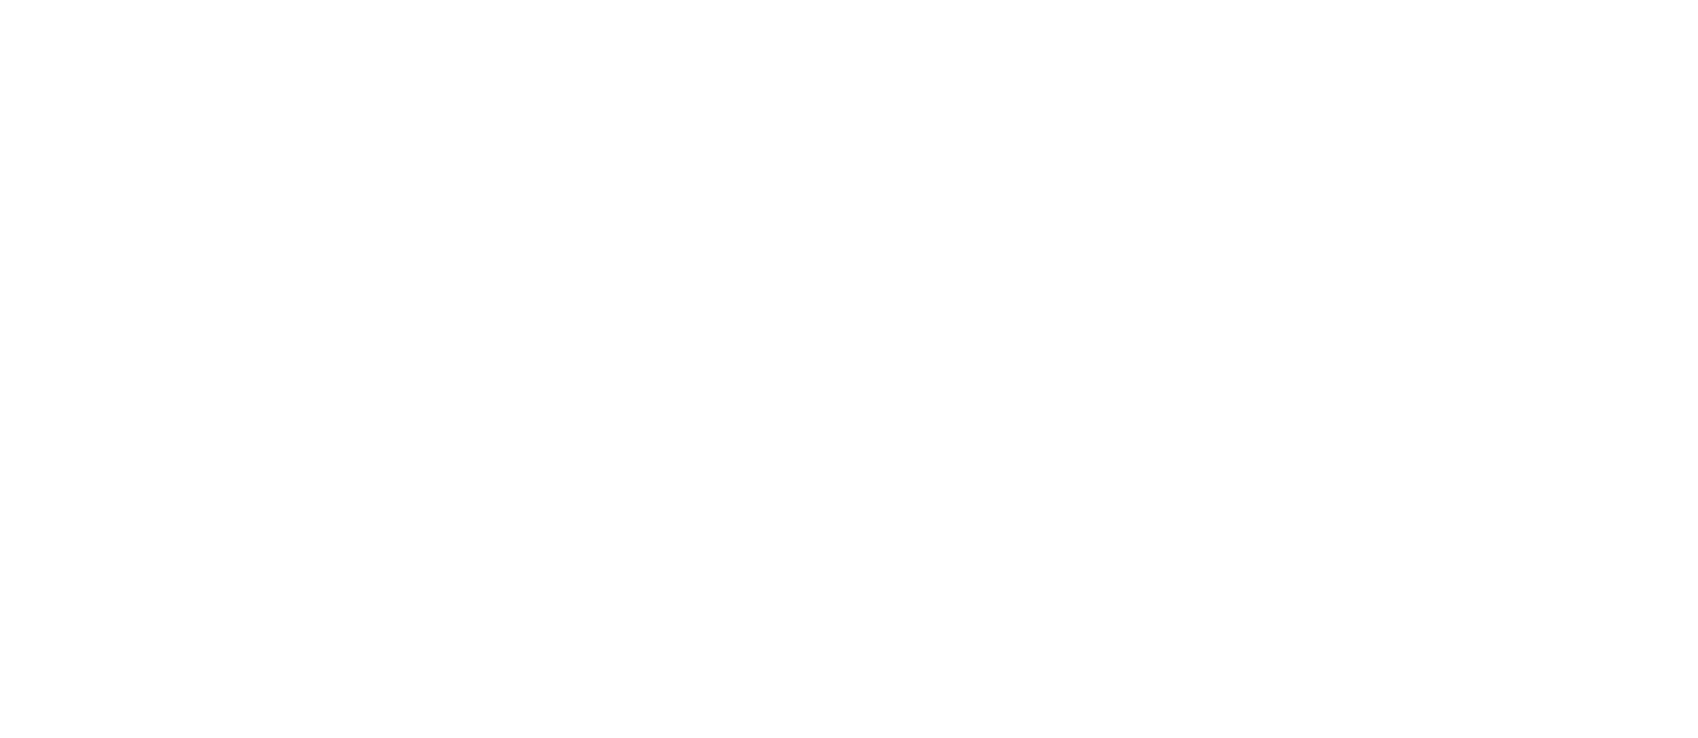 Indiana Ministries